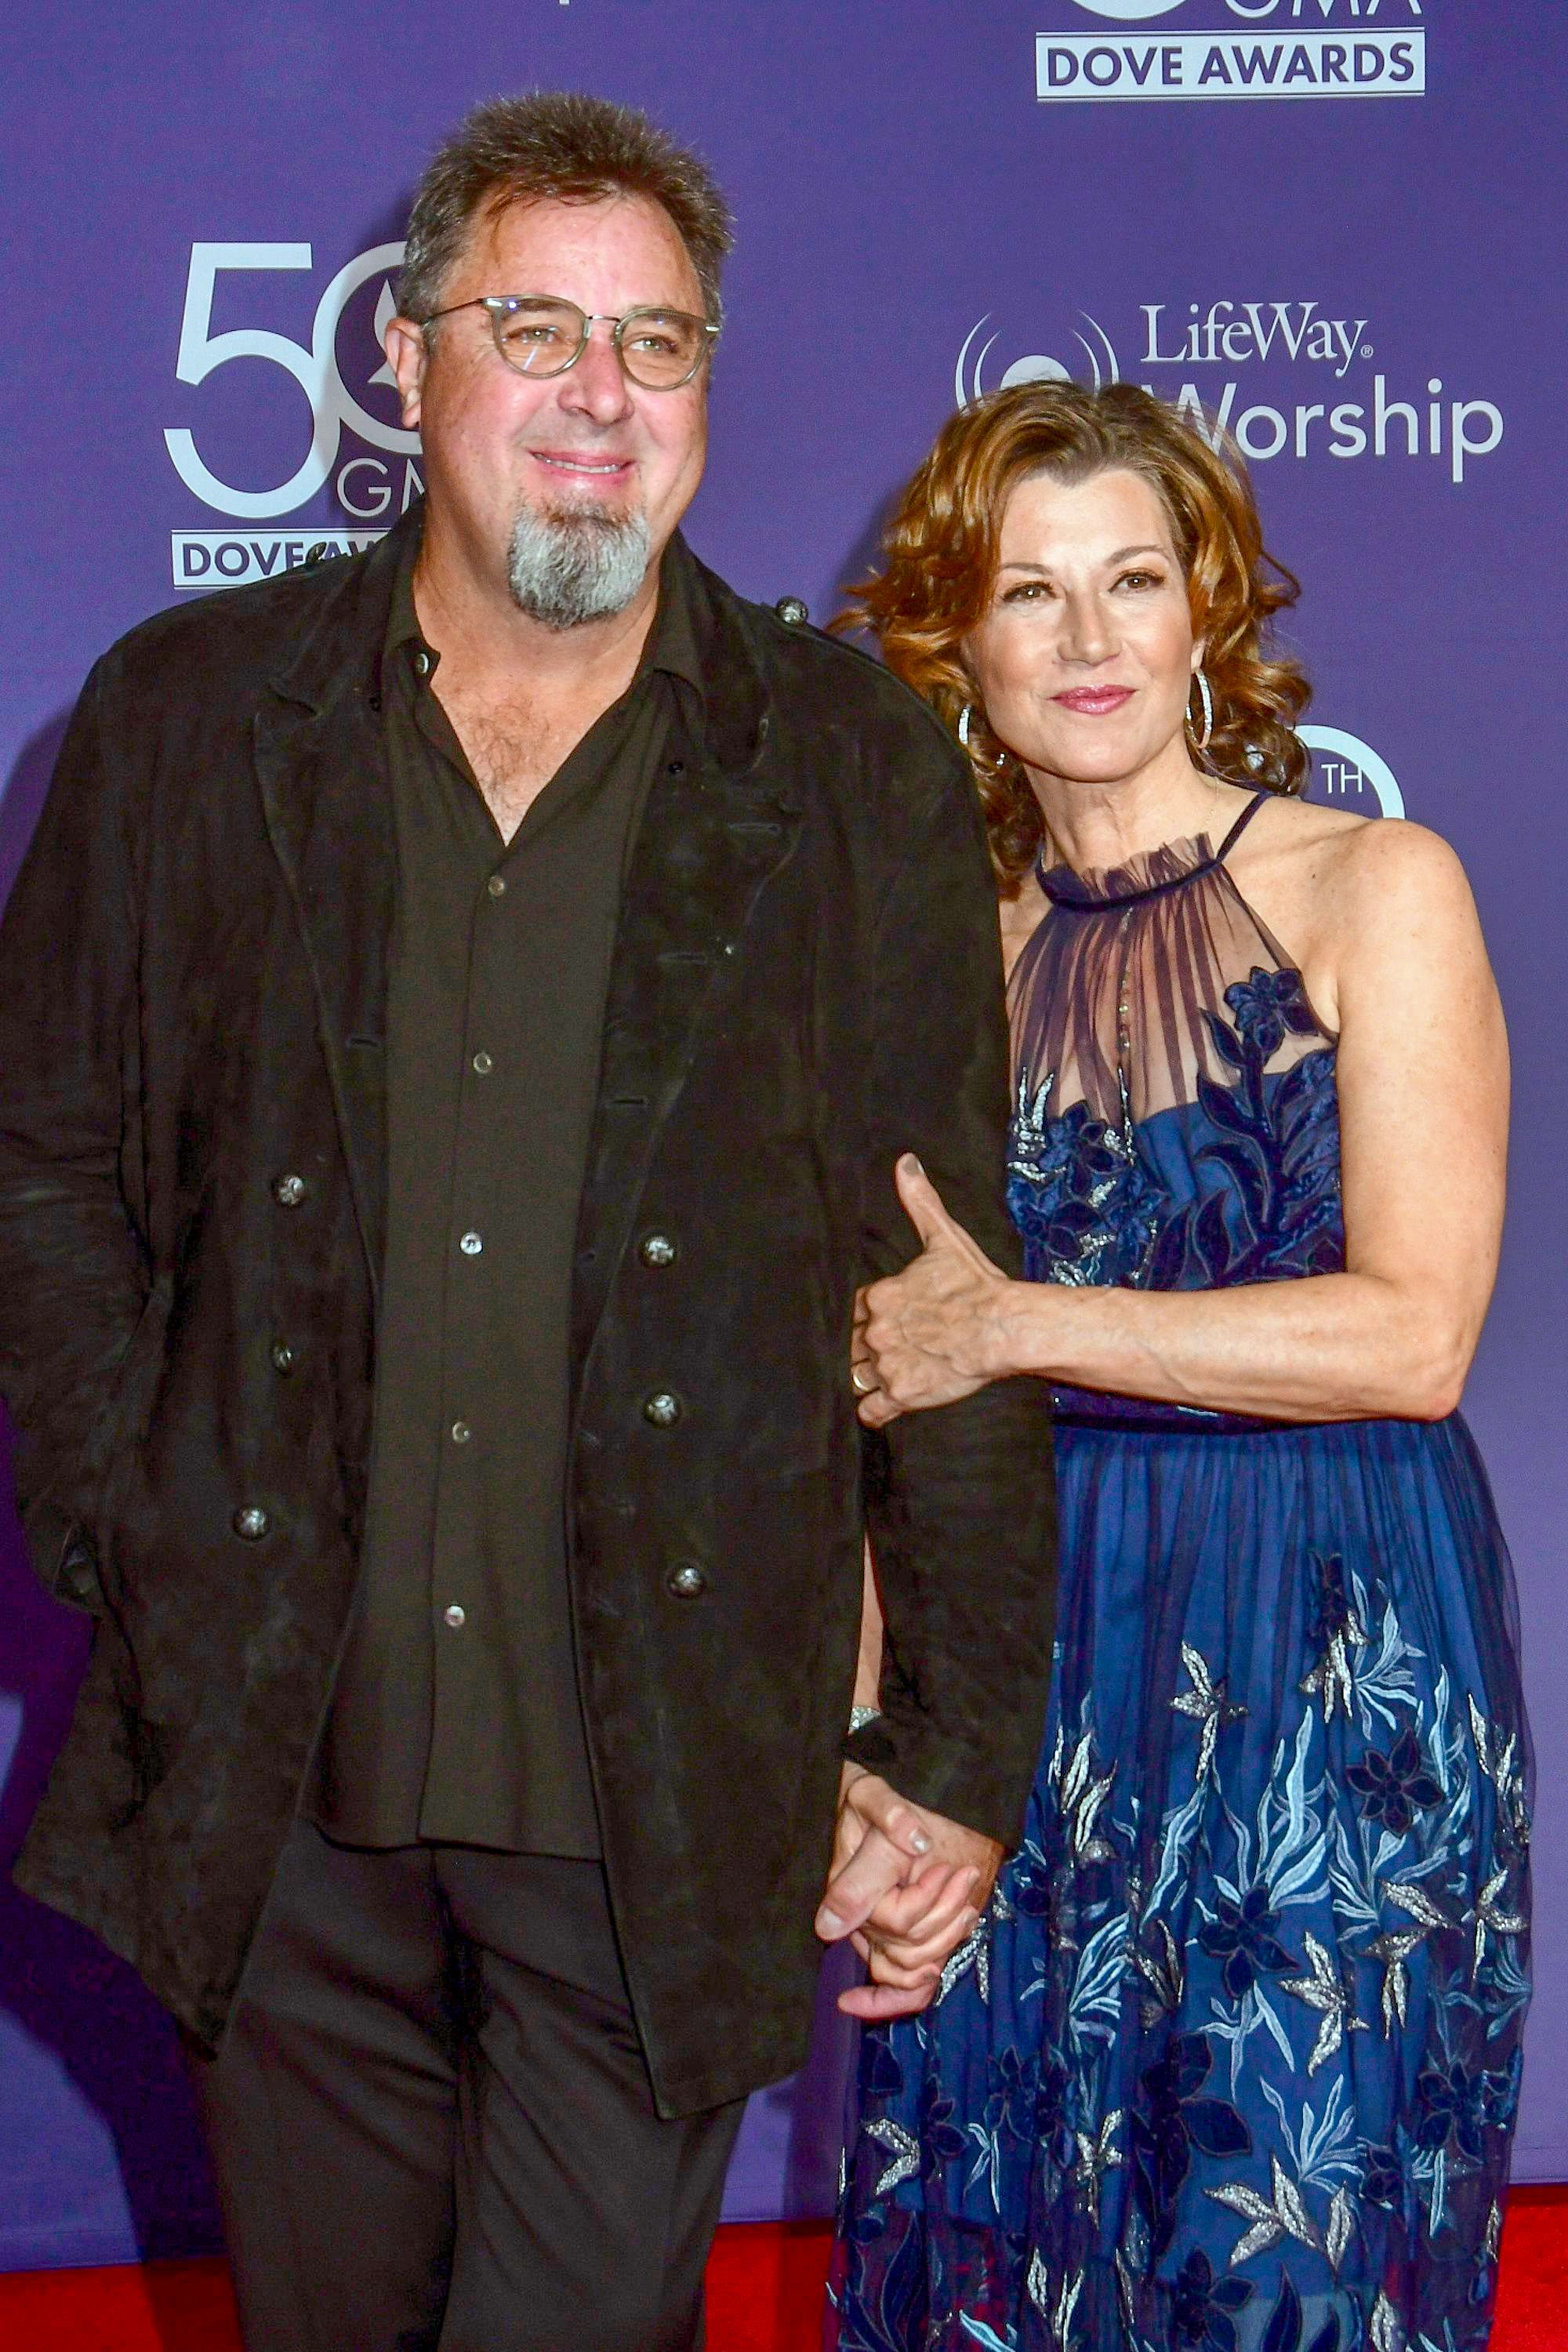 Amy Grant Talks Life With Vince Gill and Their Blended Family of 4 Kids: 'We Met Through Music'